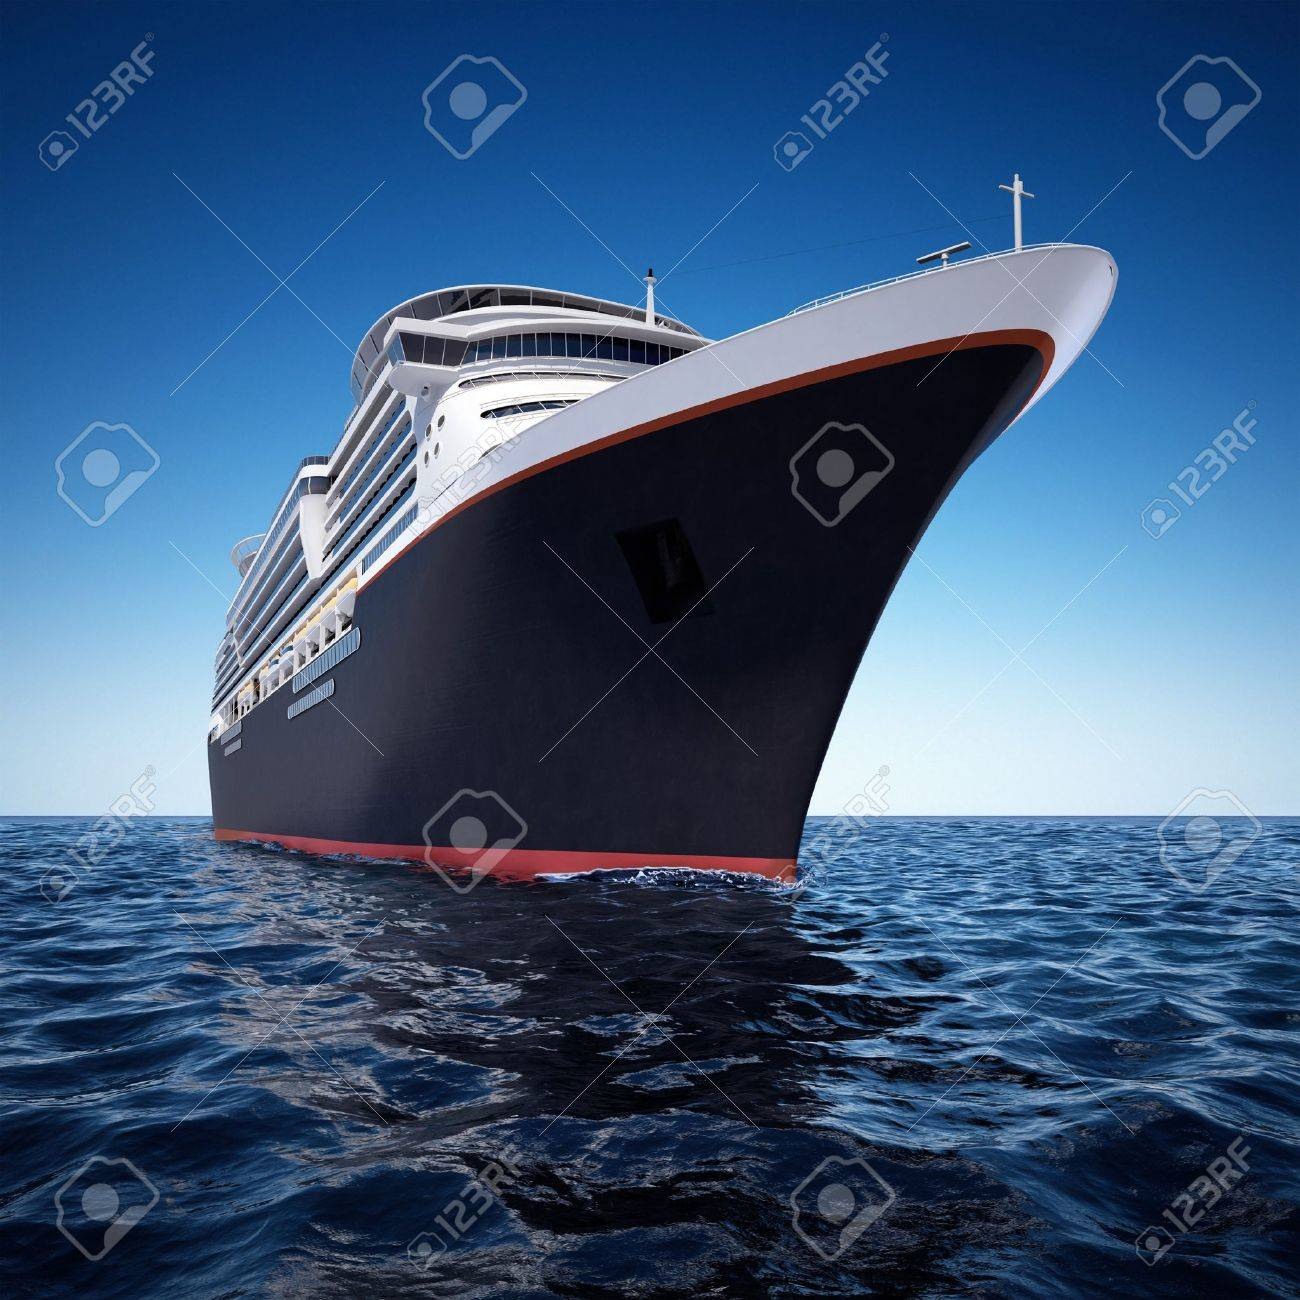 luxury white cruise ship shot from extreme angle at water level on a clear day with choppy seas and deep blue sky. Stock Photo - 7059507